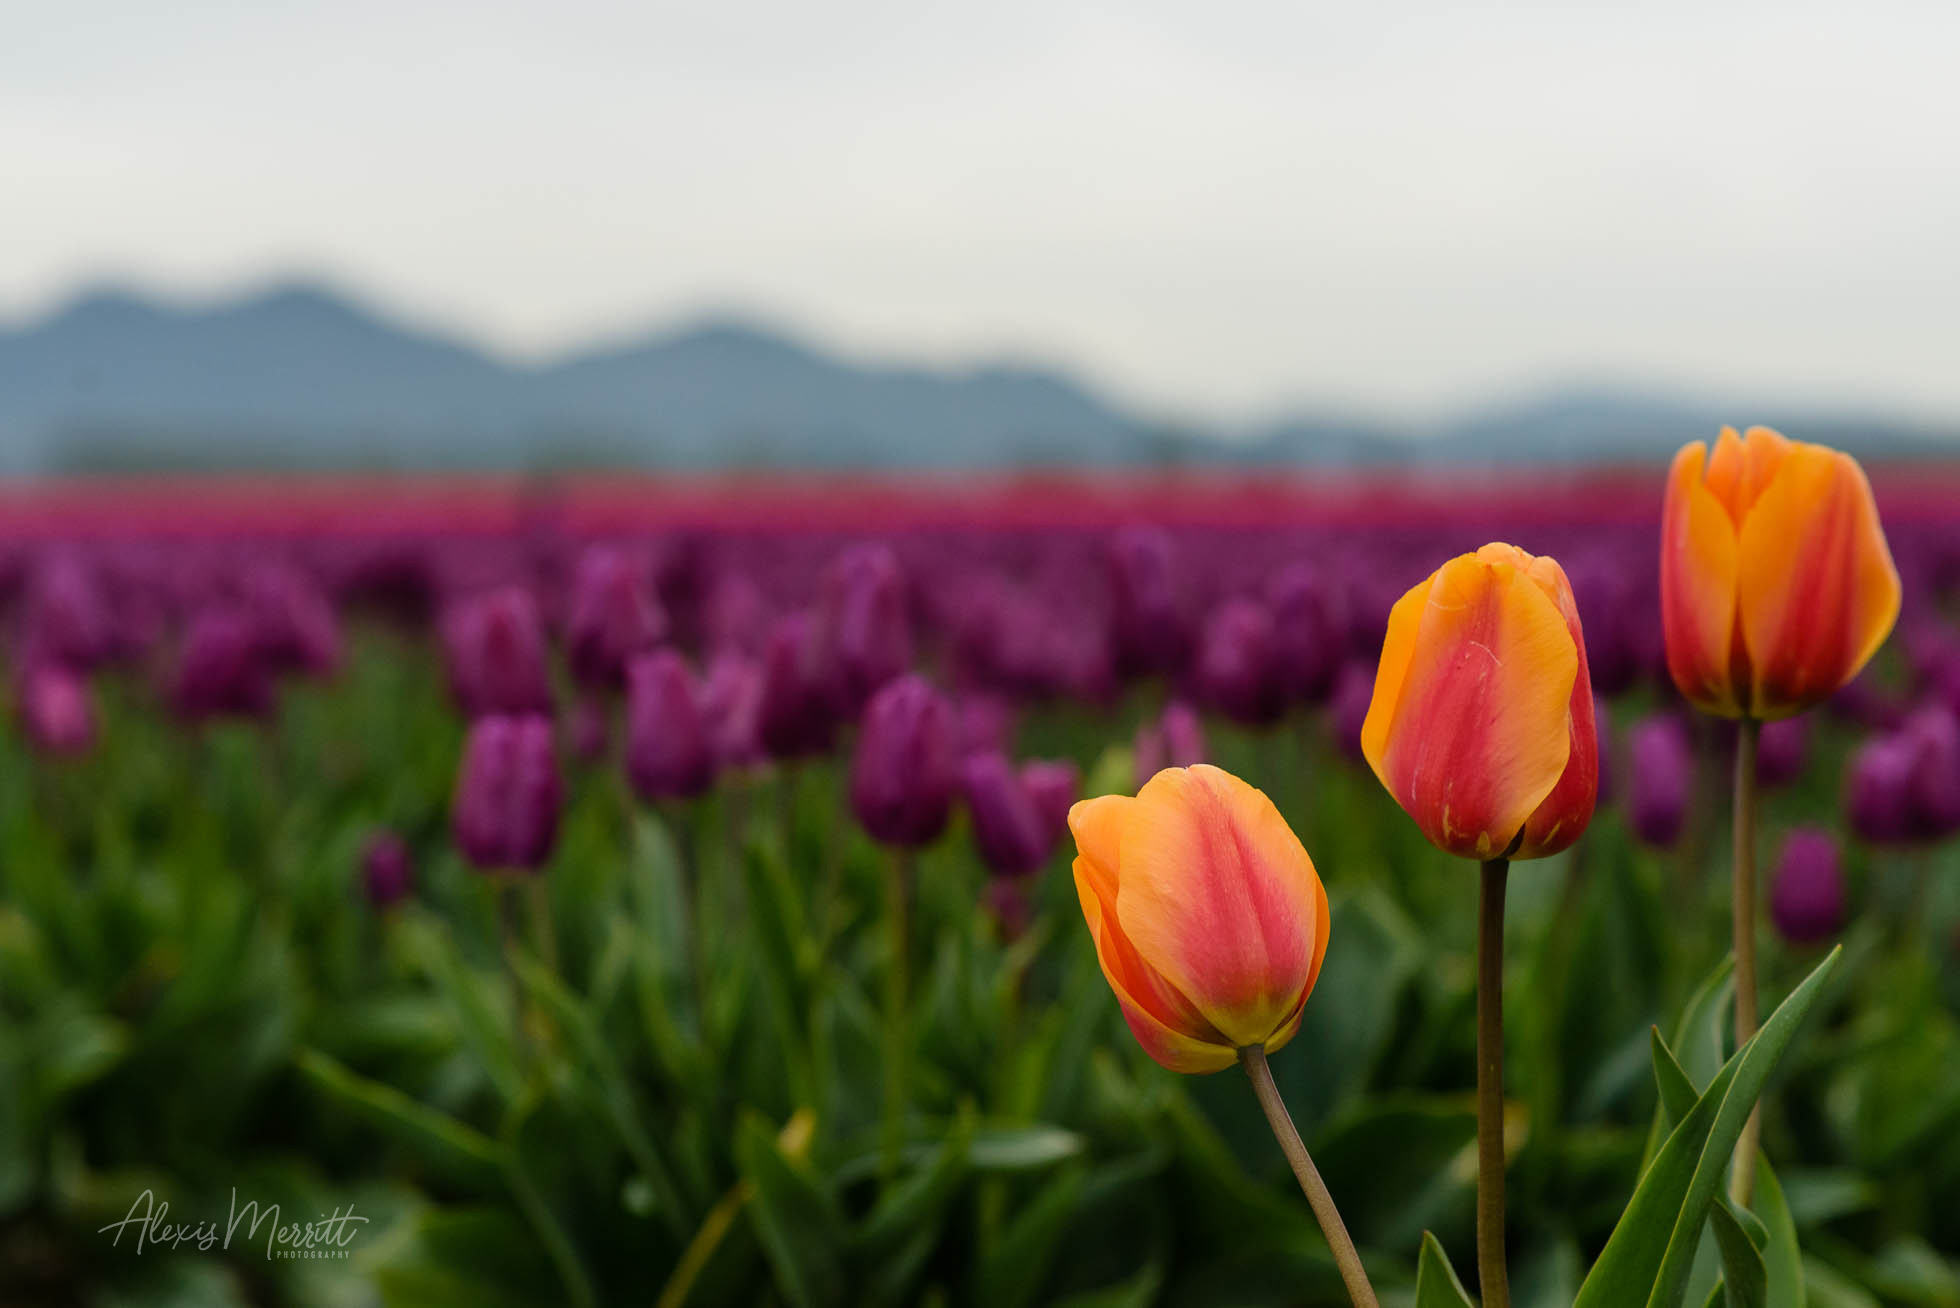 Three Tulips with background of tulips at Roozengaarde in Mt Vernon, WA by Seattle Photographer Alexis Merritt